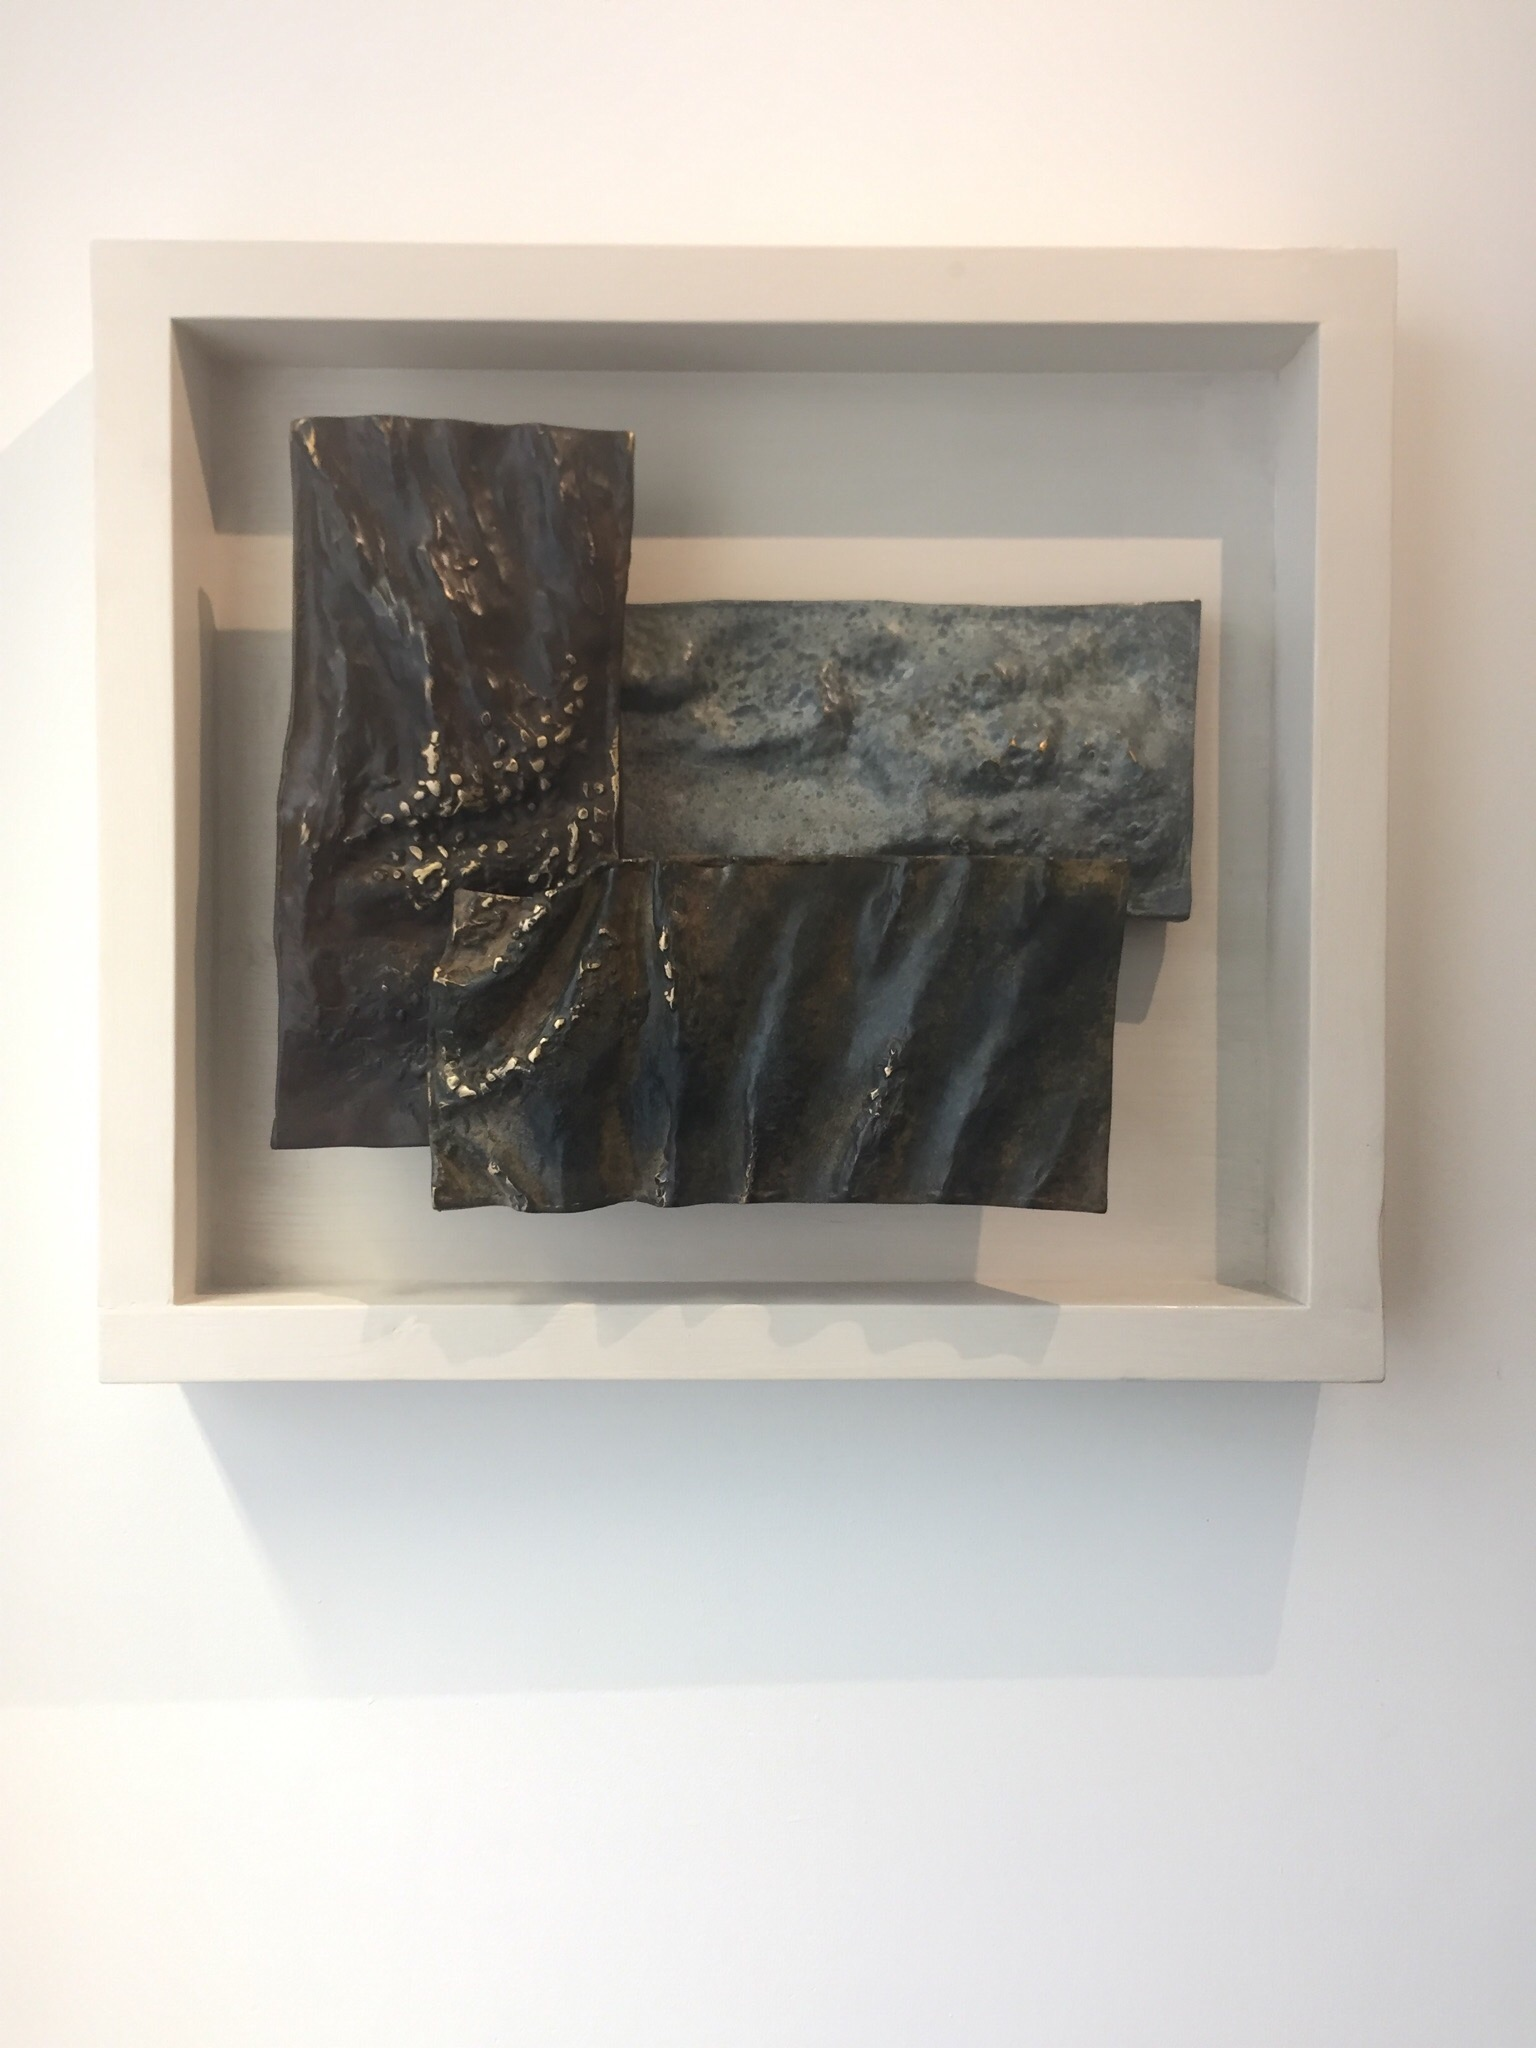 Sea, River, Sky; bronze. A wall-mounted, three-part relief composition based on the natural water cycle.